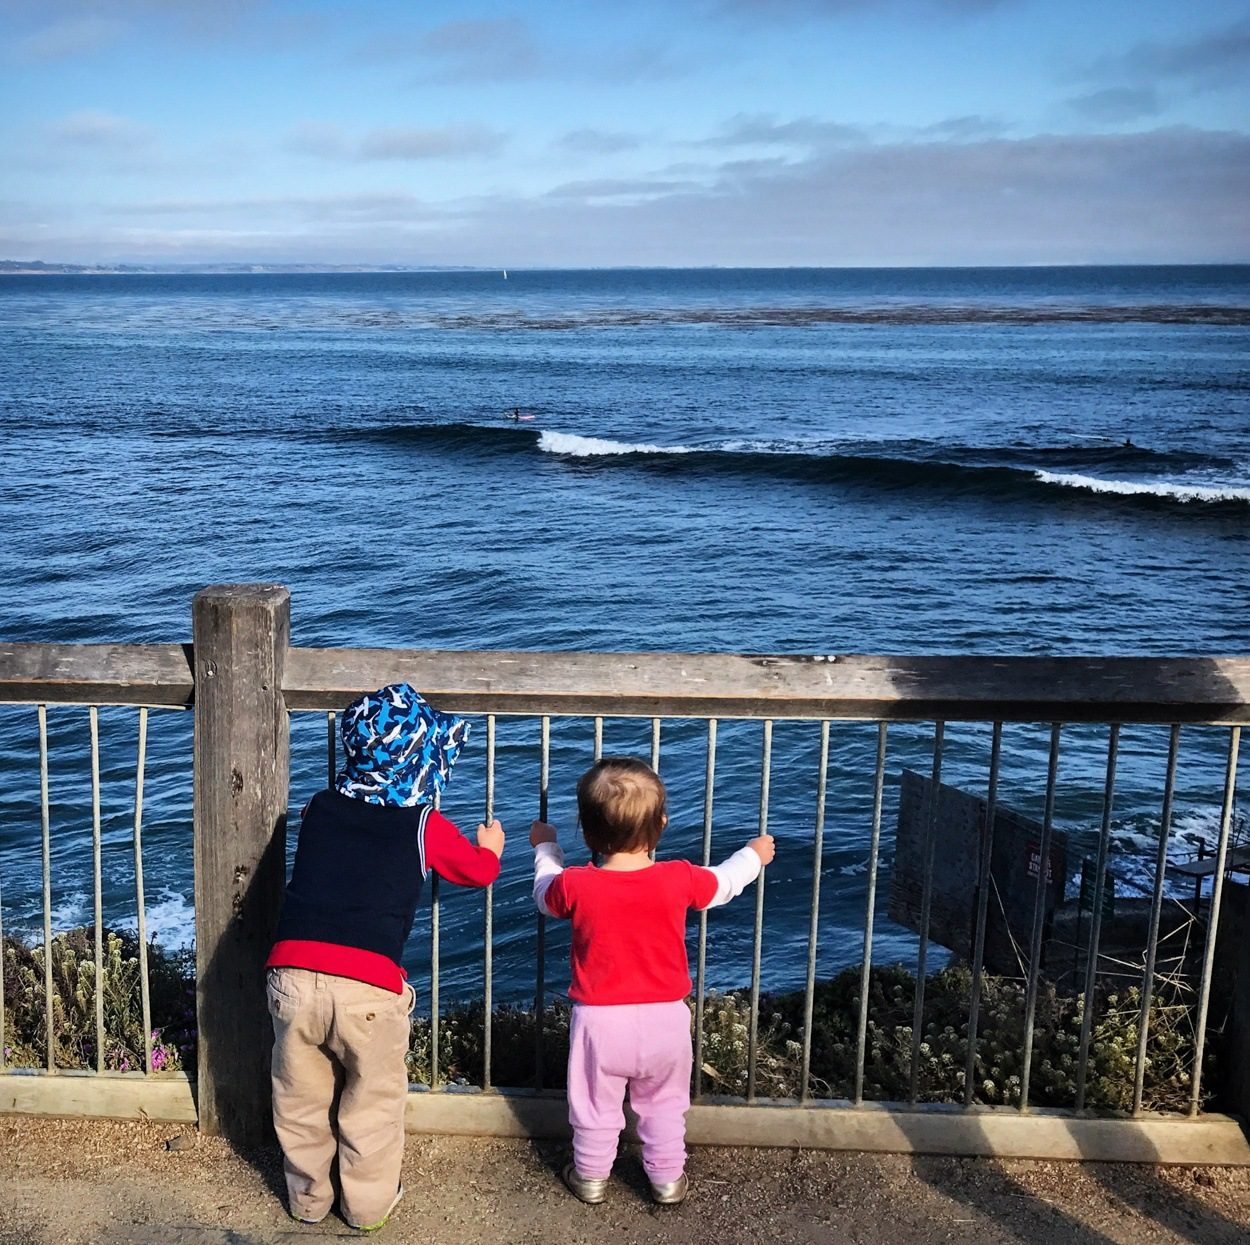 Our little ones yelling at the waves in Santa Cruz, California.